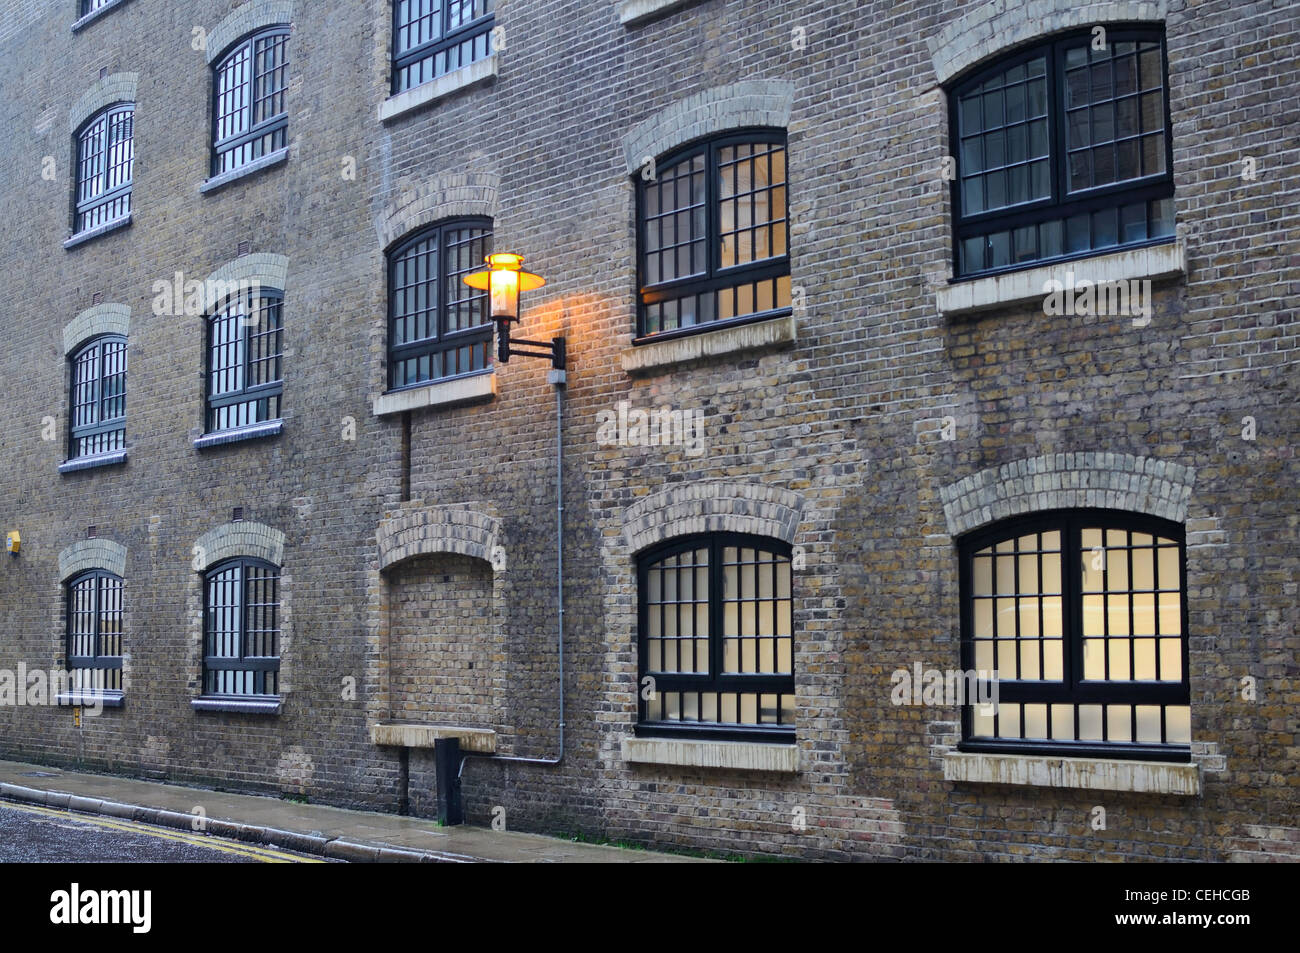 London: Old brick house at the Shad Thames street - Stock Image